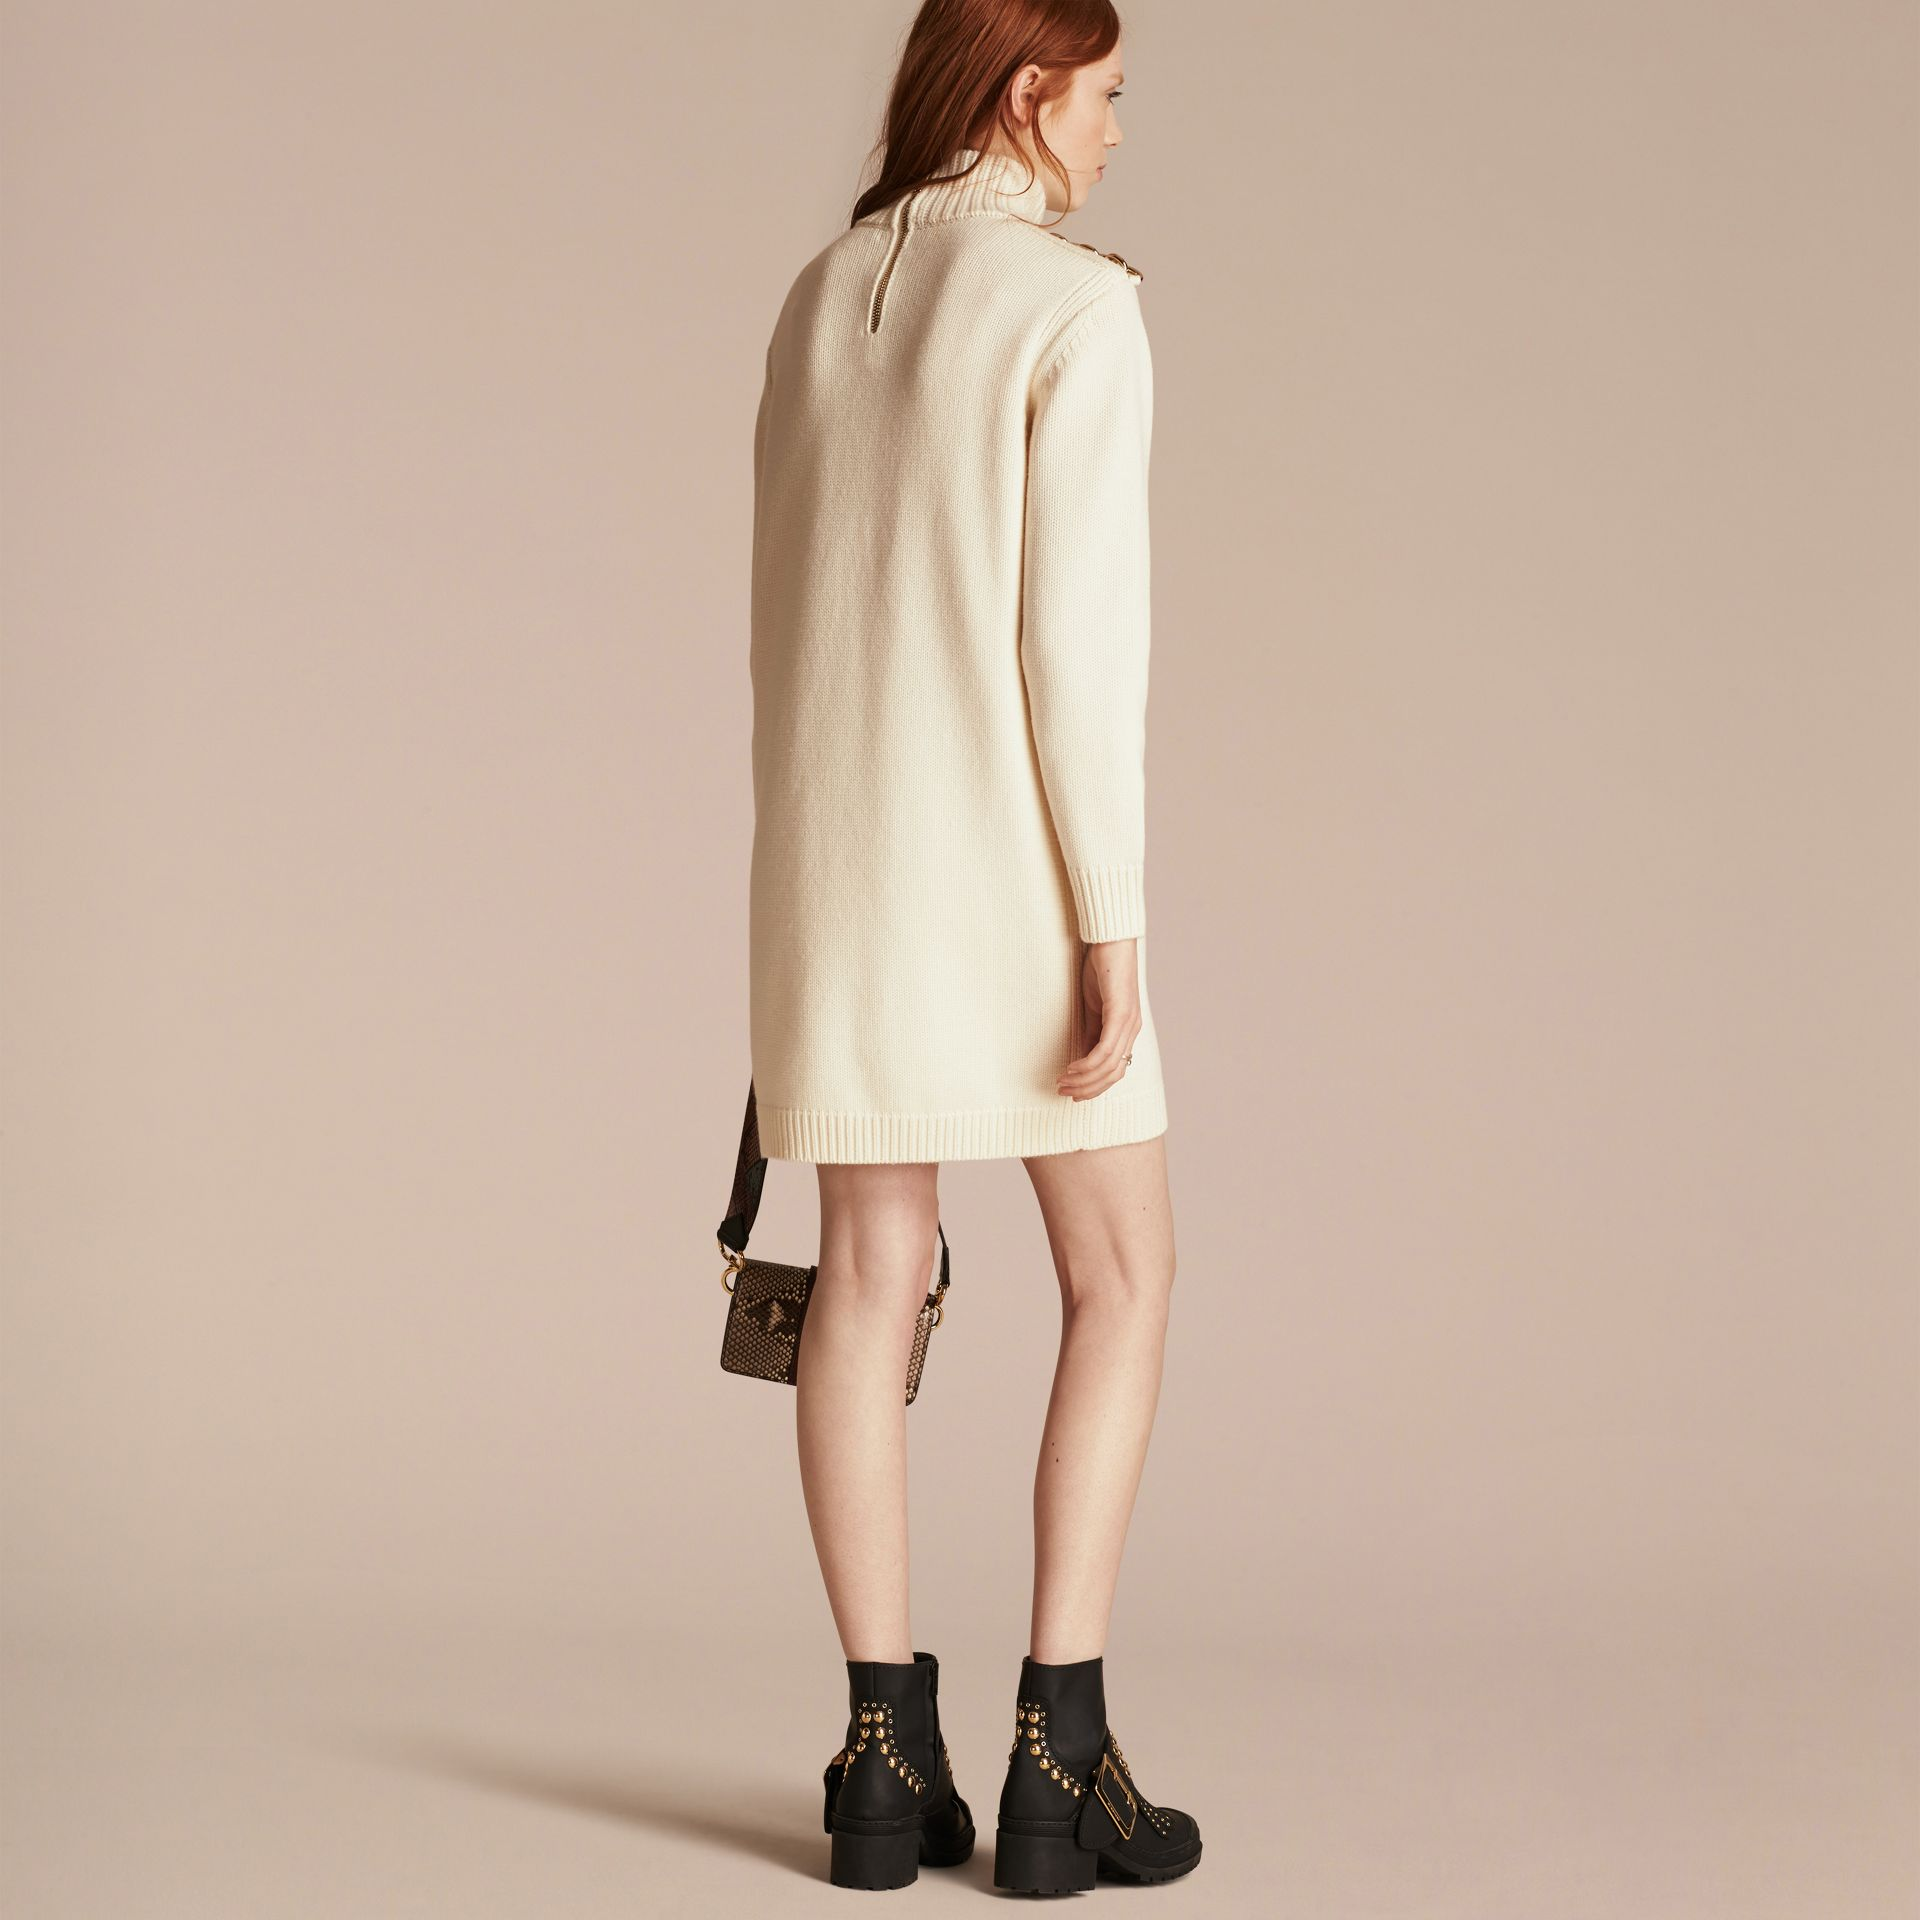 Natural white Regimental Detail Wool Cashmere High-neck Dress - gallery image 3